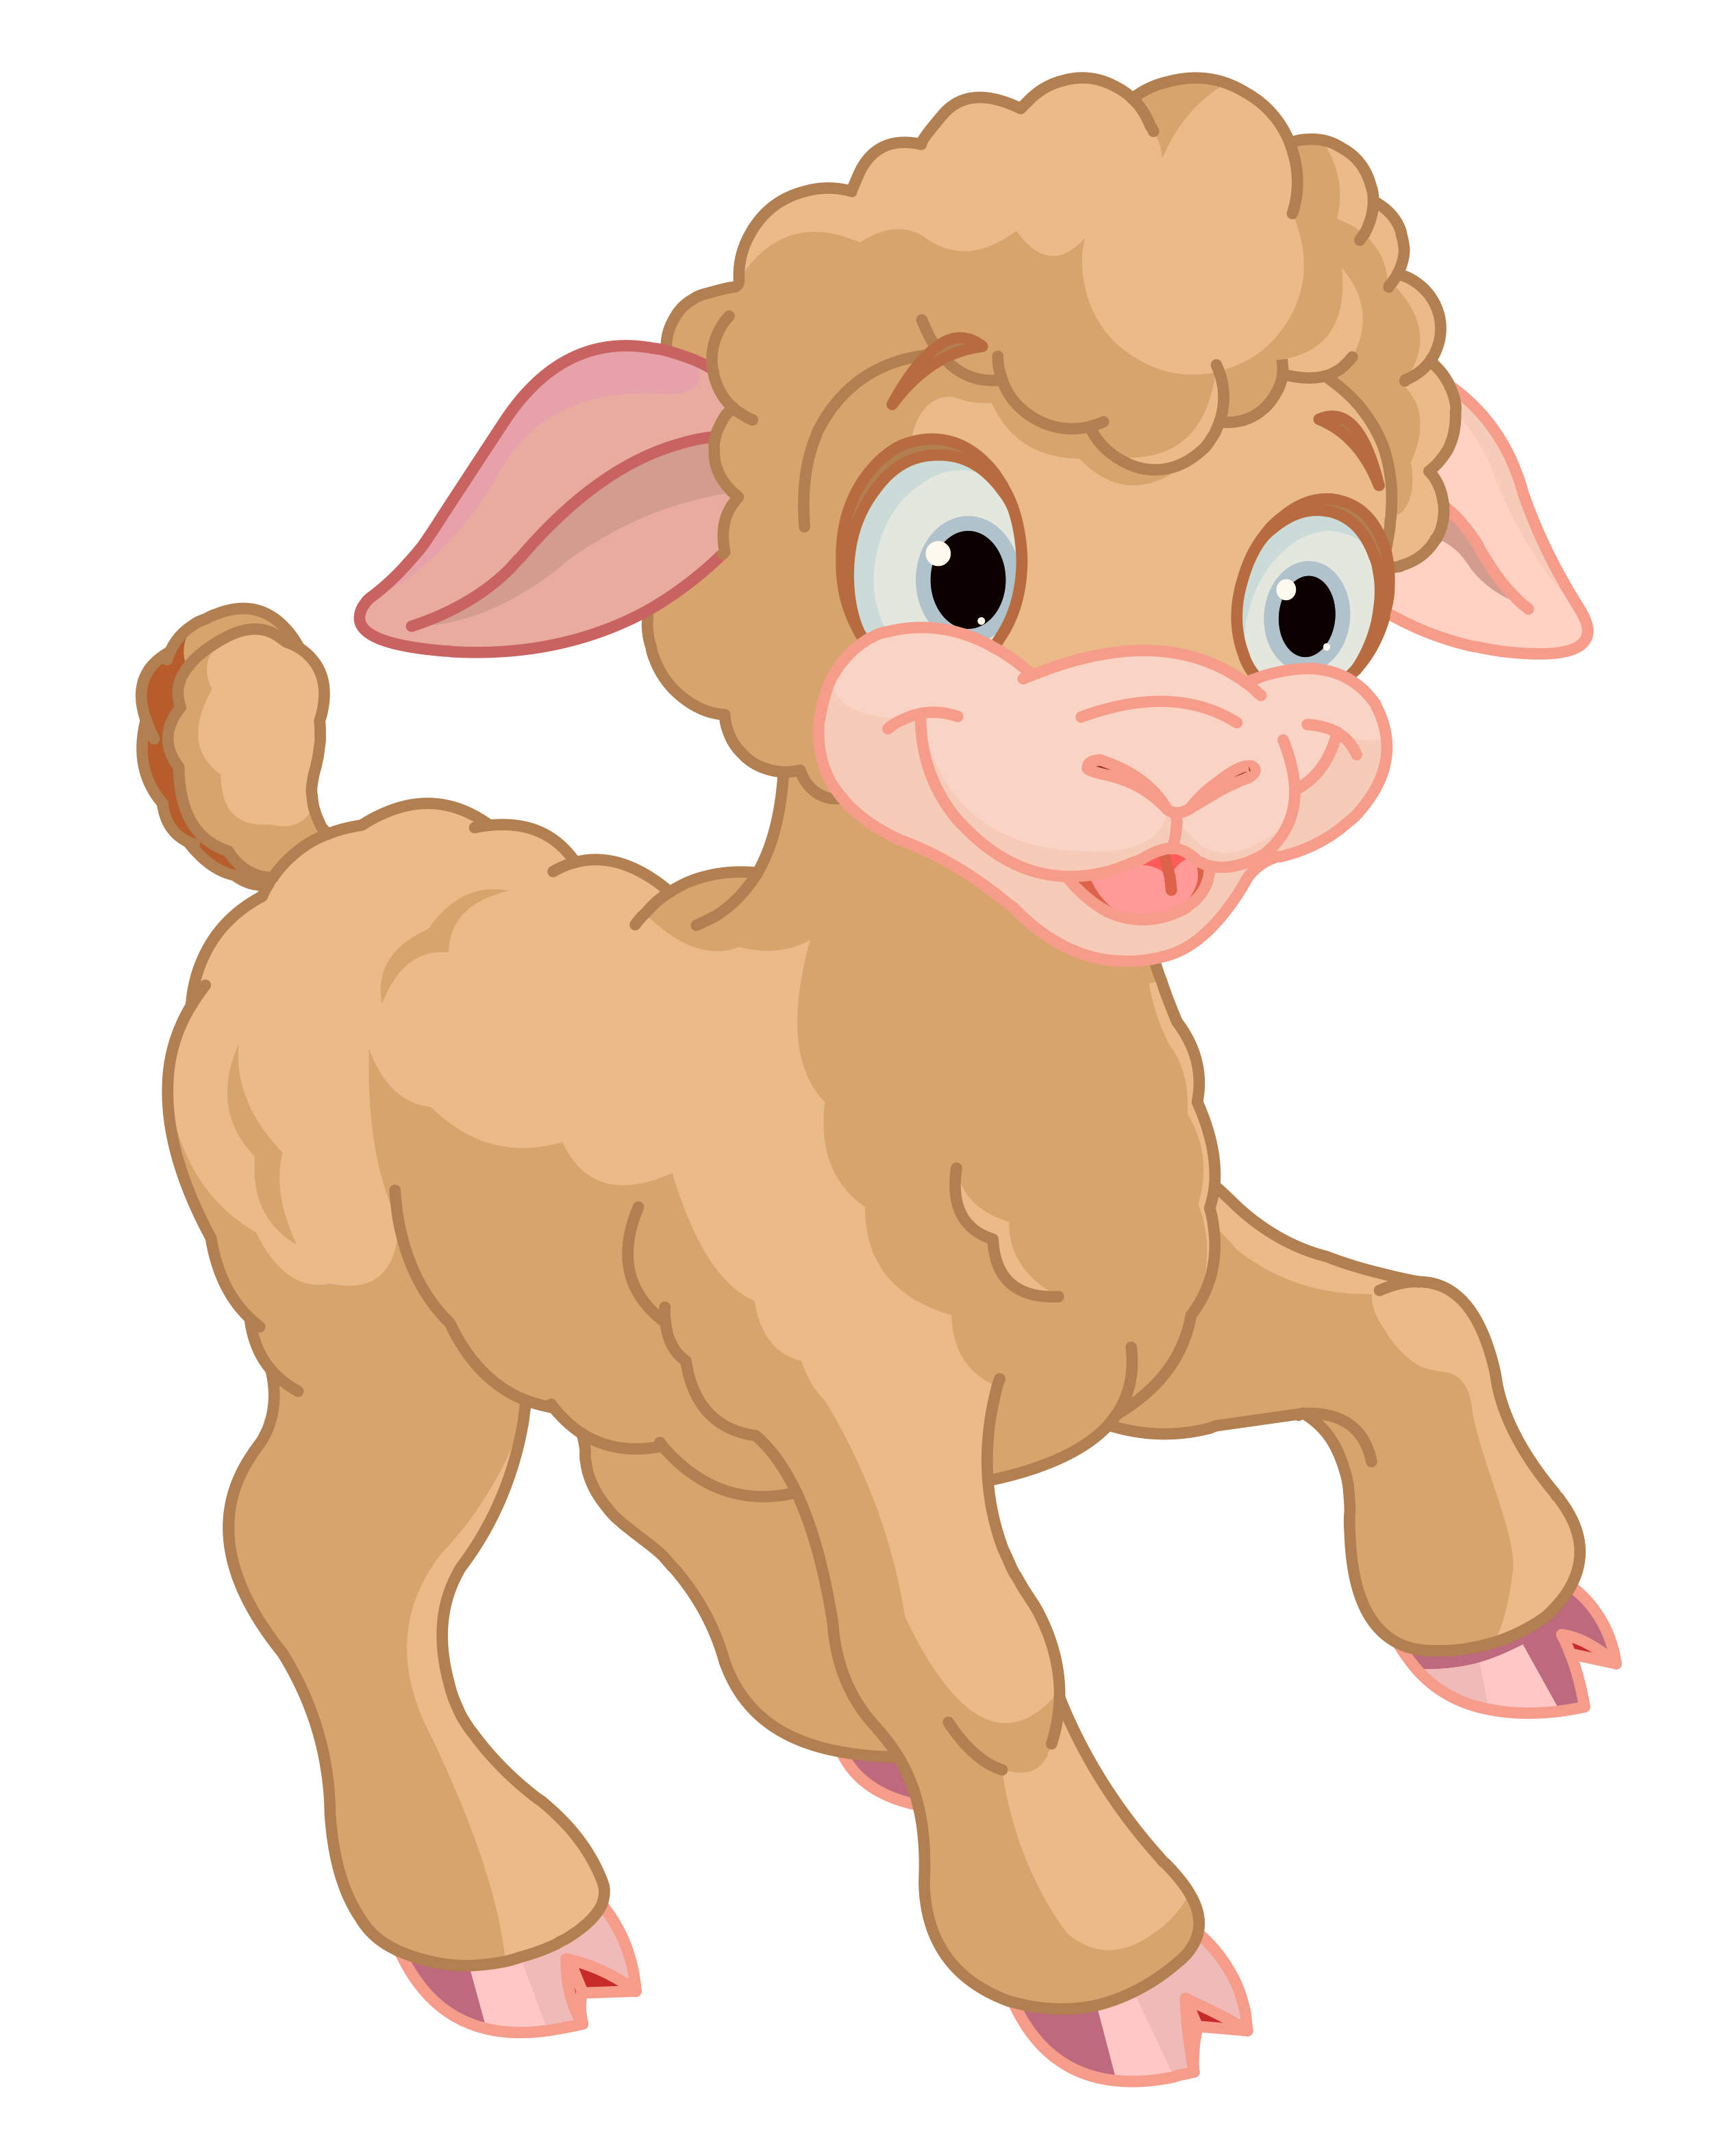 Lamb Png Free - Cute Little Lamb PNG Clipart​ | Gallery Yopriceville - High ...